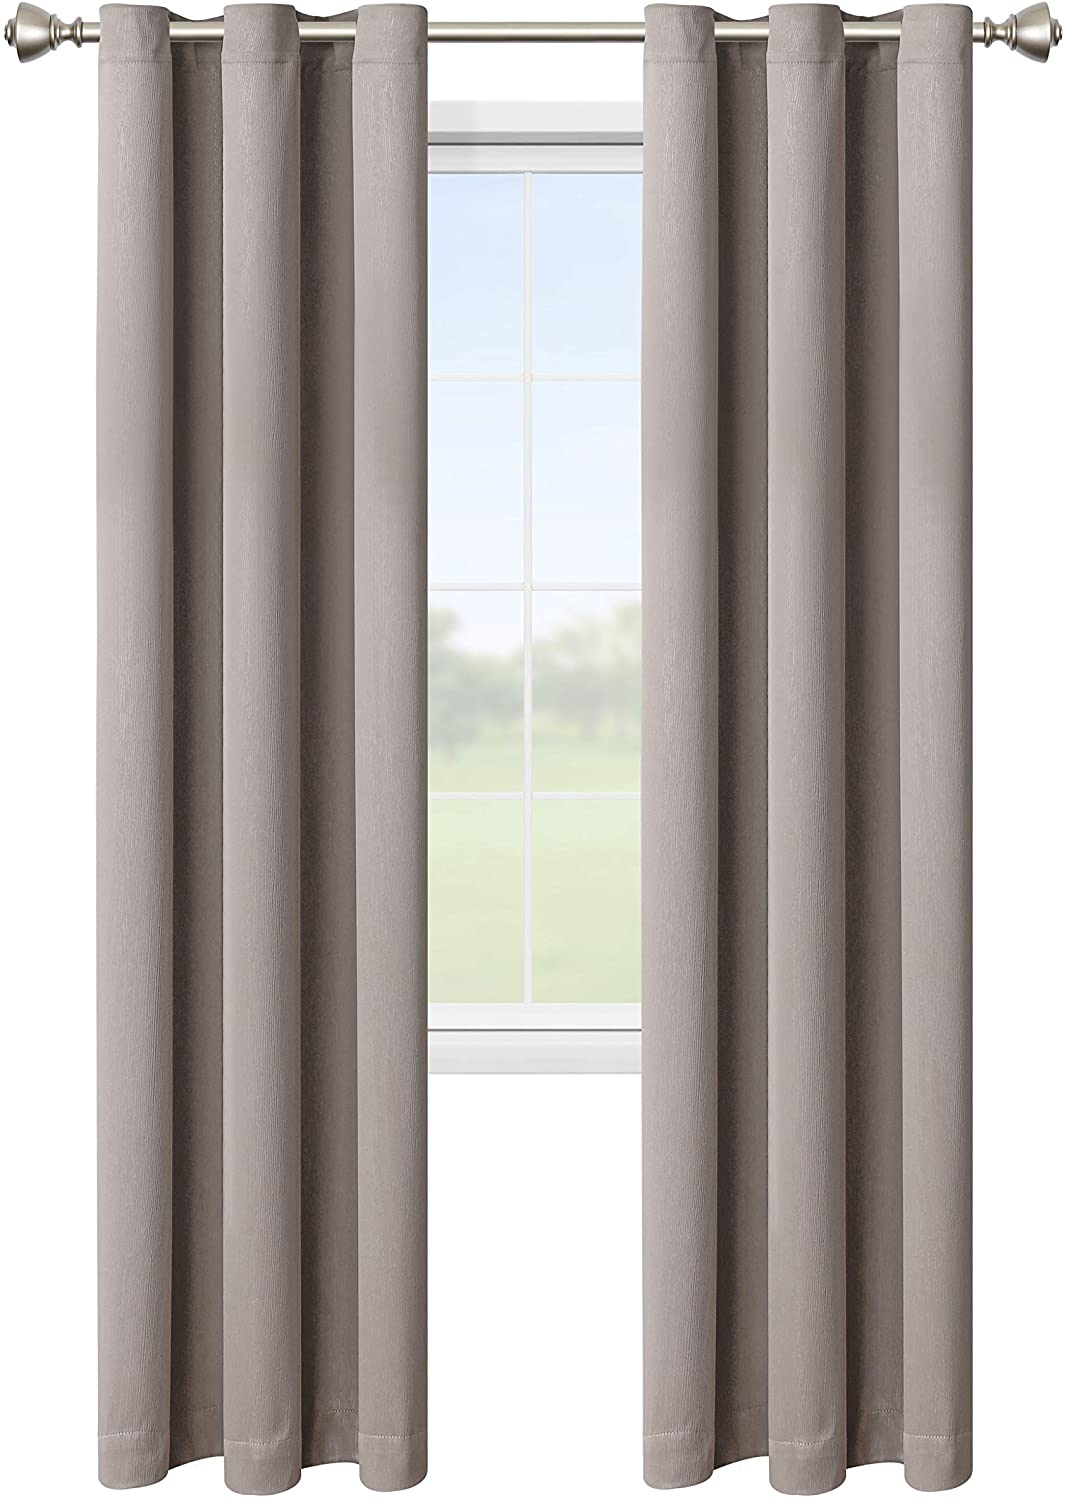 LORDTEX Blackout Curtains for Bedroom -Embossed Design Thermal Insulated Curtains with Grommet Top Room Darkening Noise Reducing Window Drapes for Living Room, 2 Panels, Khaki, 42 x 72 inch